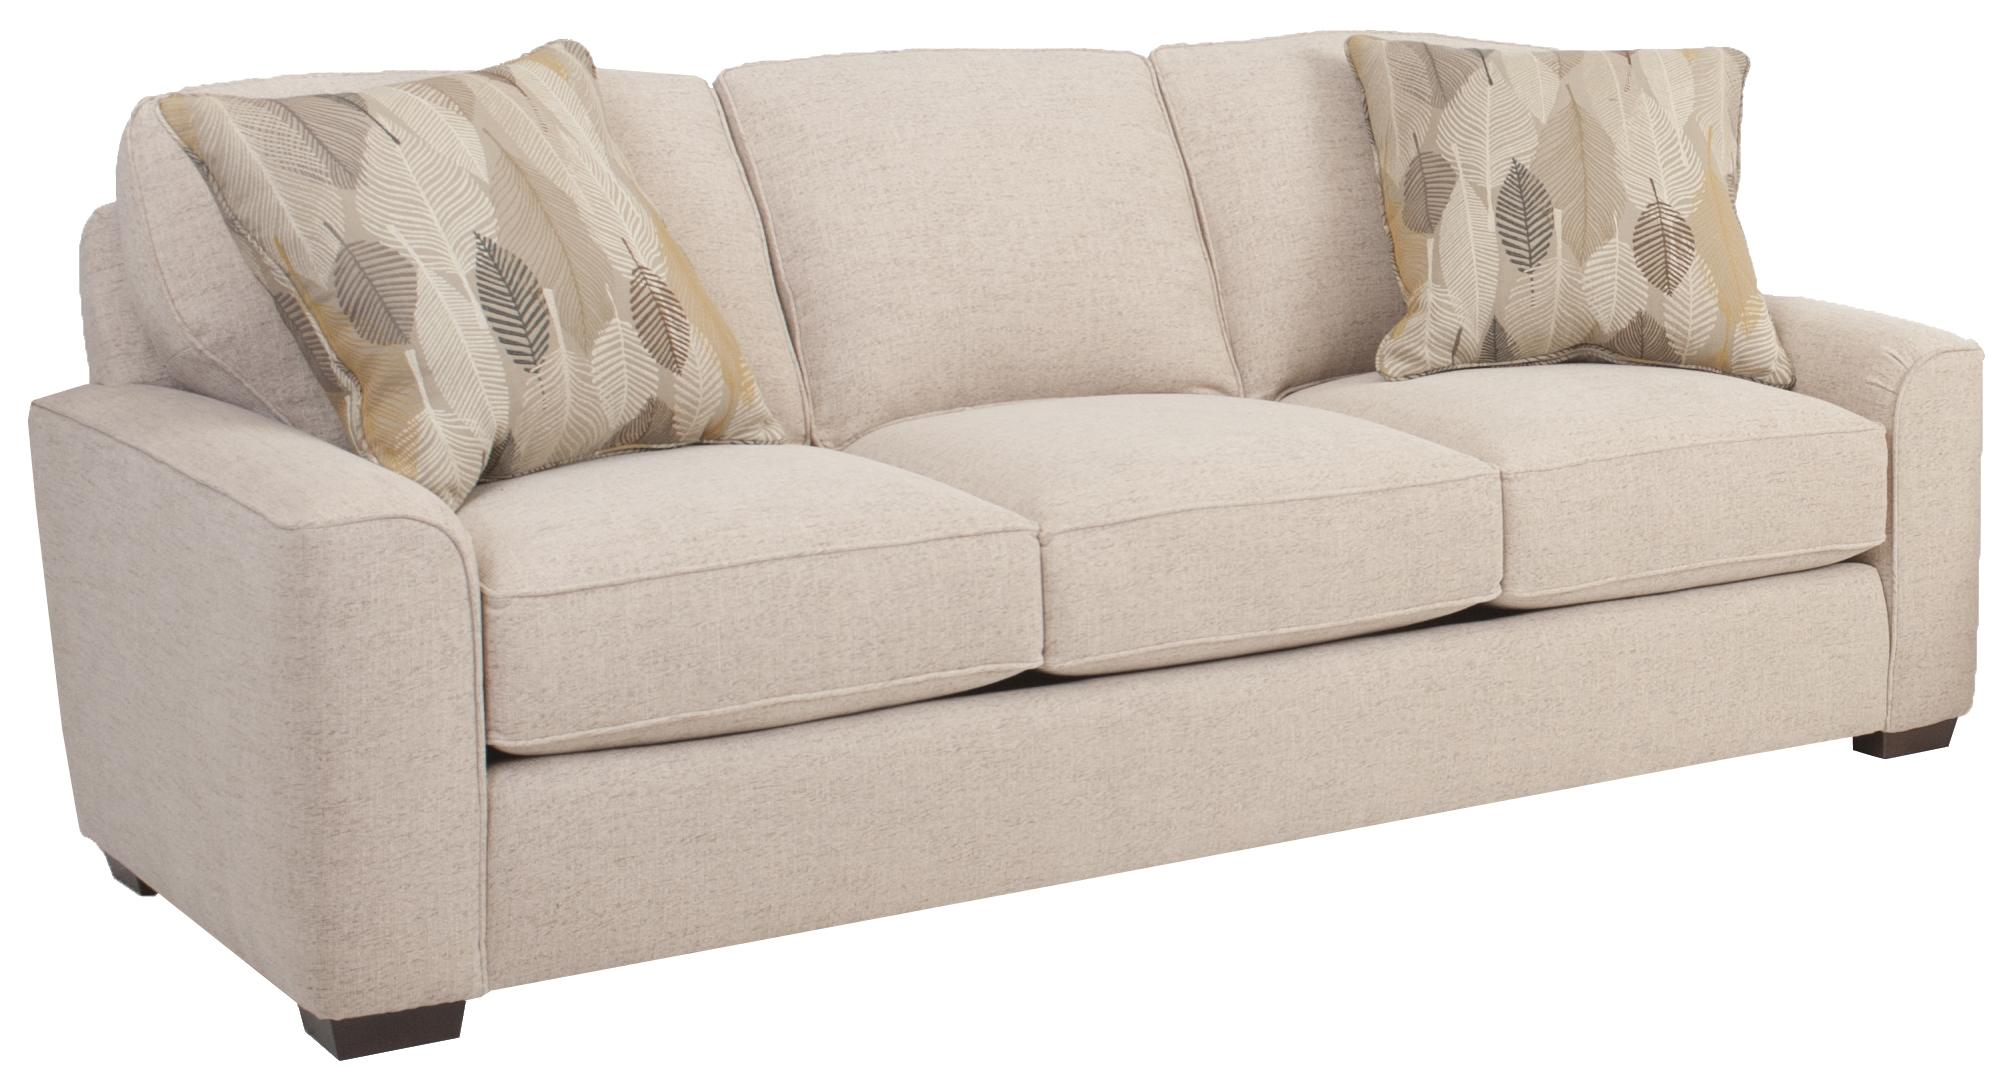 Mid Size Retro Styled Sofa with Deco Arms by Smith Brothers